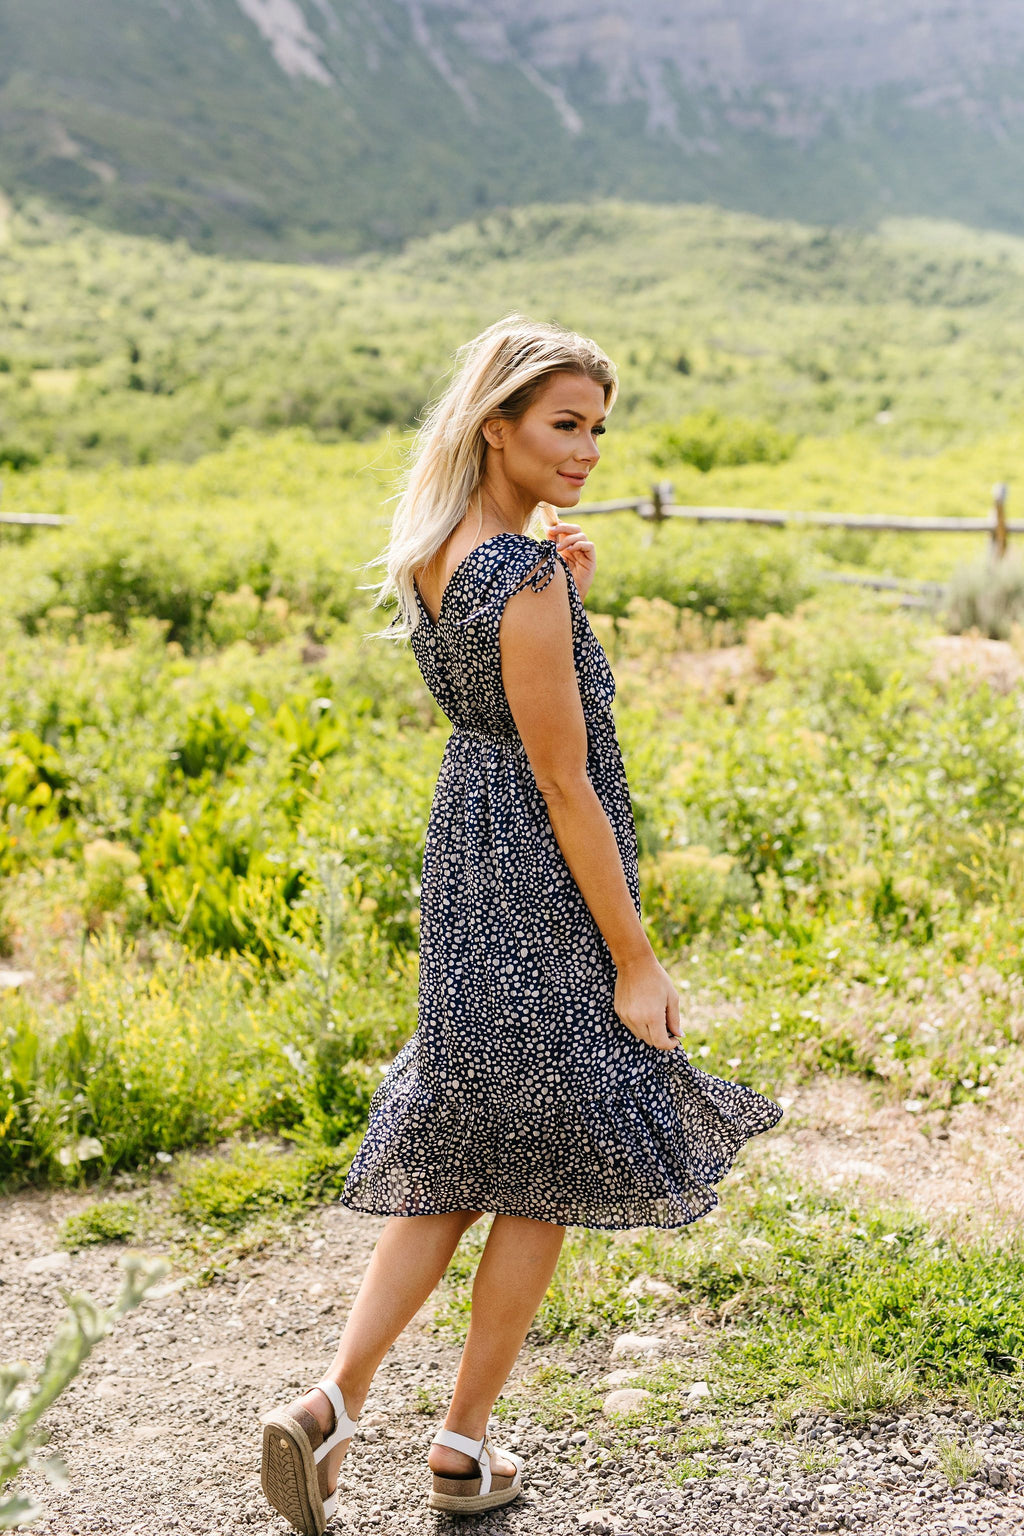 Beauty Spot Dress-1XL, 2XL, 3XL, 7-17-2020, 7-9-2020, Bonus, Dresses, Group A, Group B, Group C, Large, Medium, Plus, Small, XL, XS-Womens Artisan USA American Made Clothing Accessories